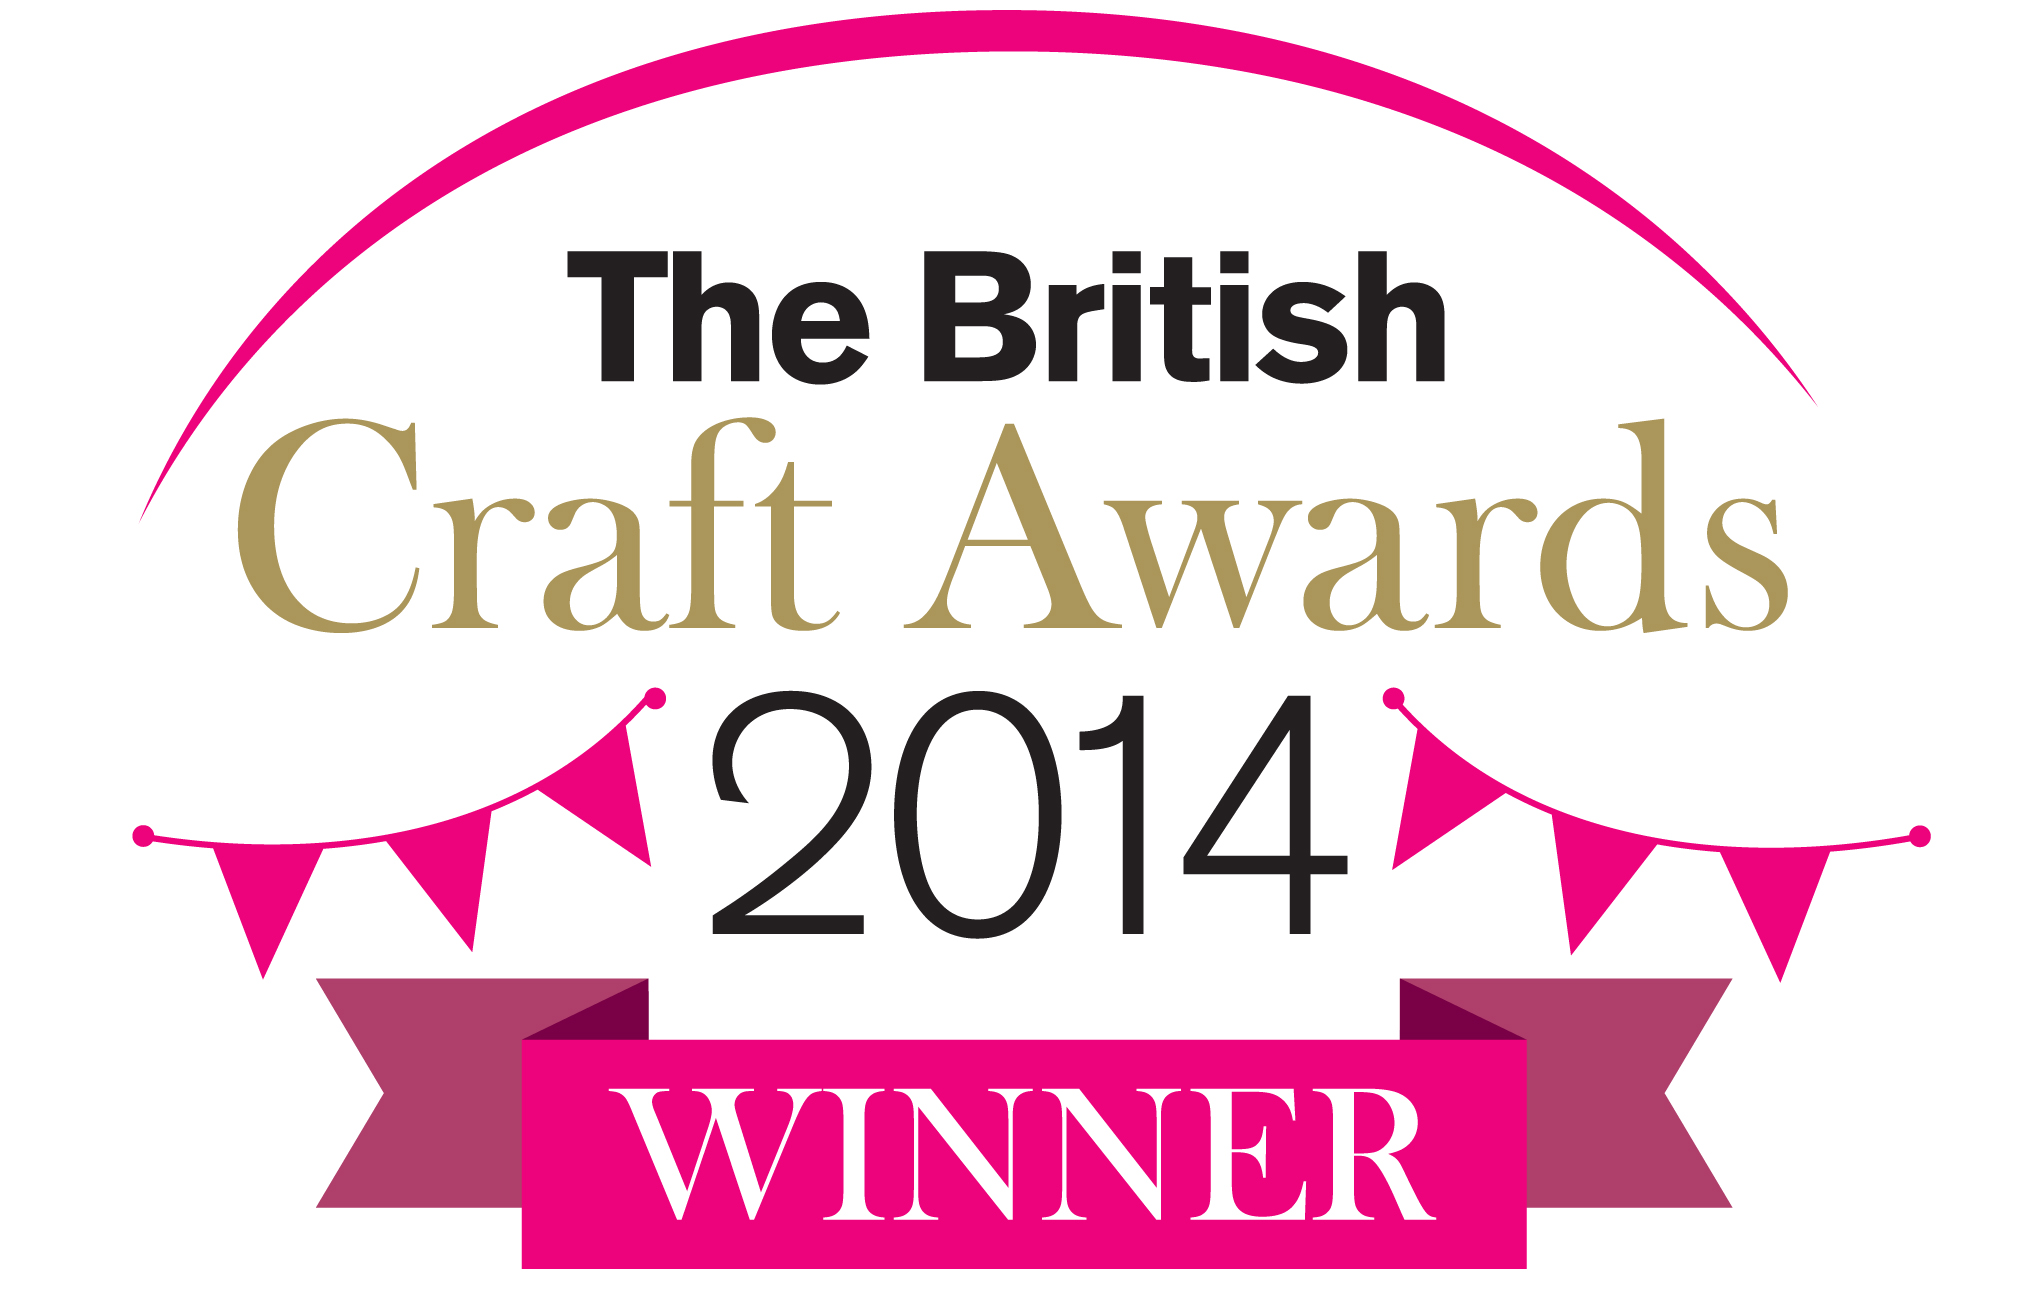 The British Craft Awards 2014